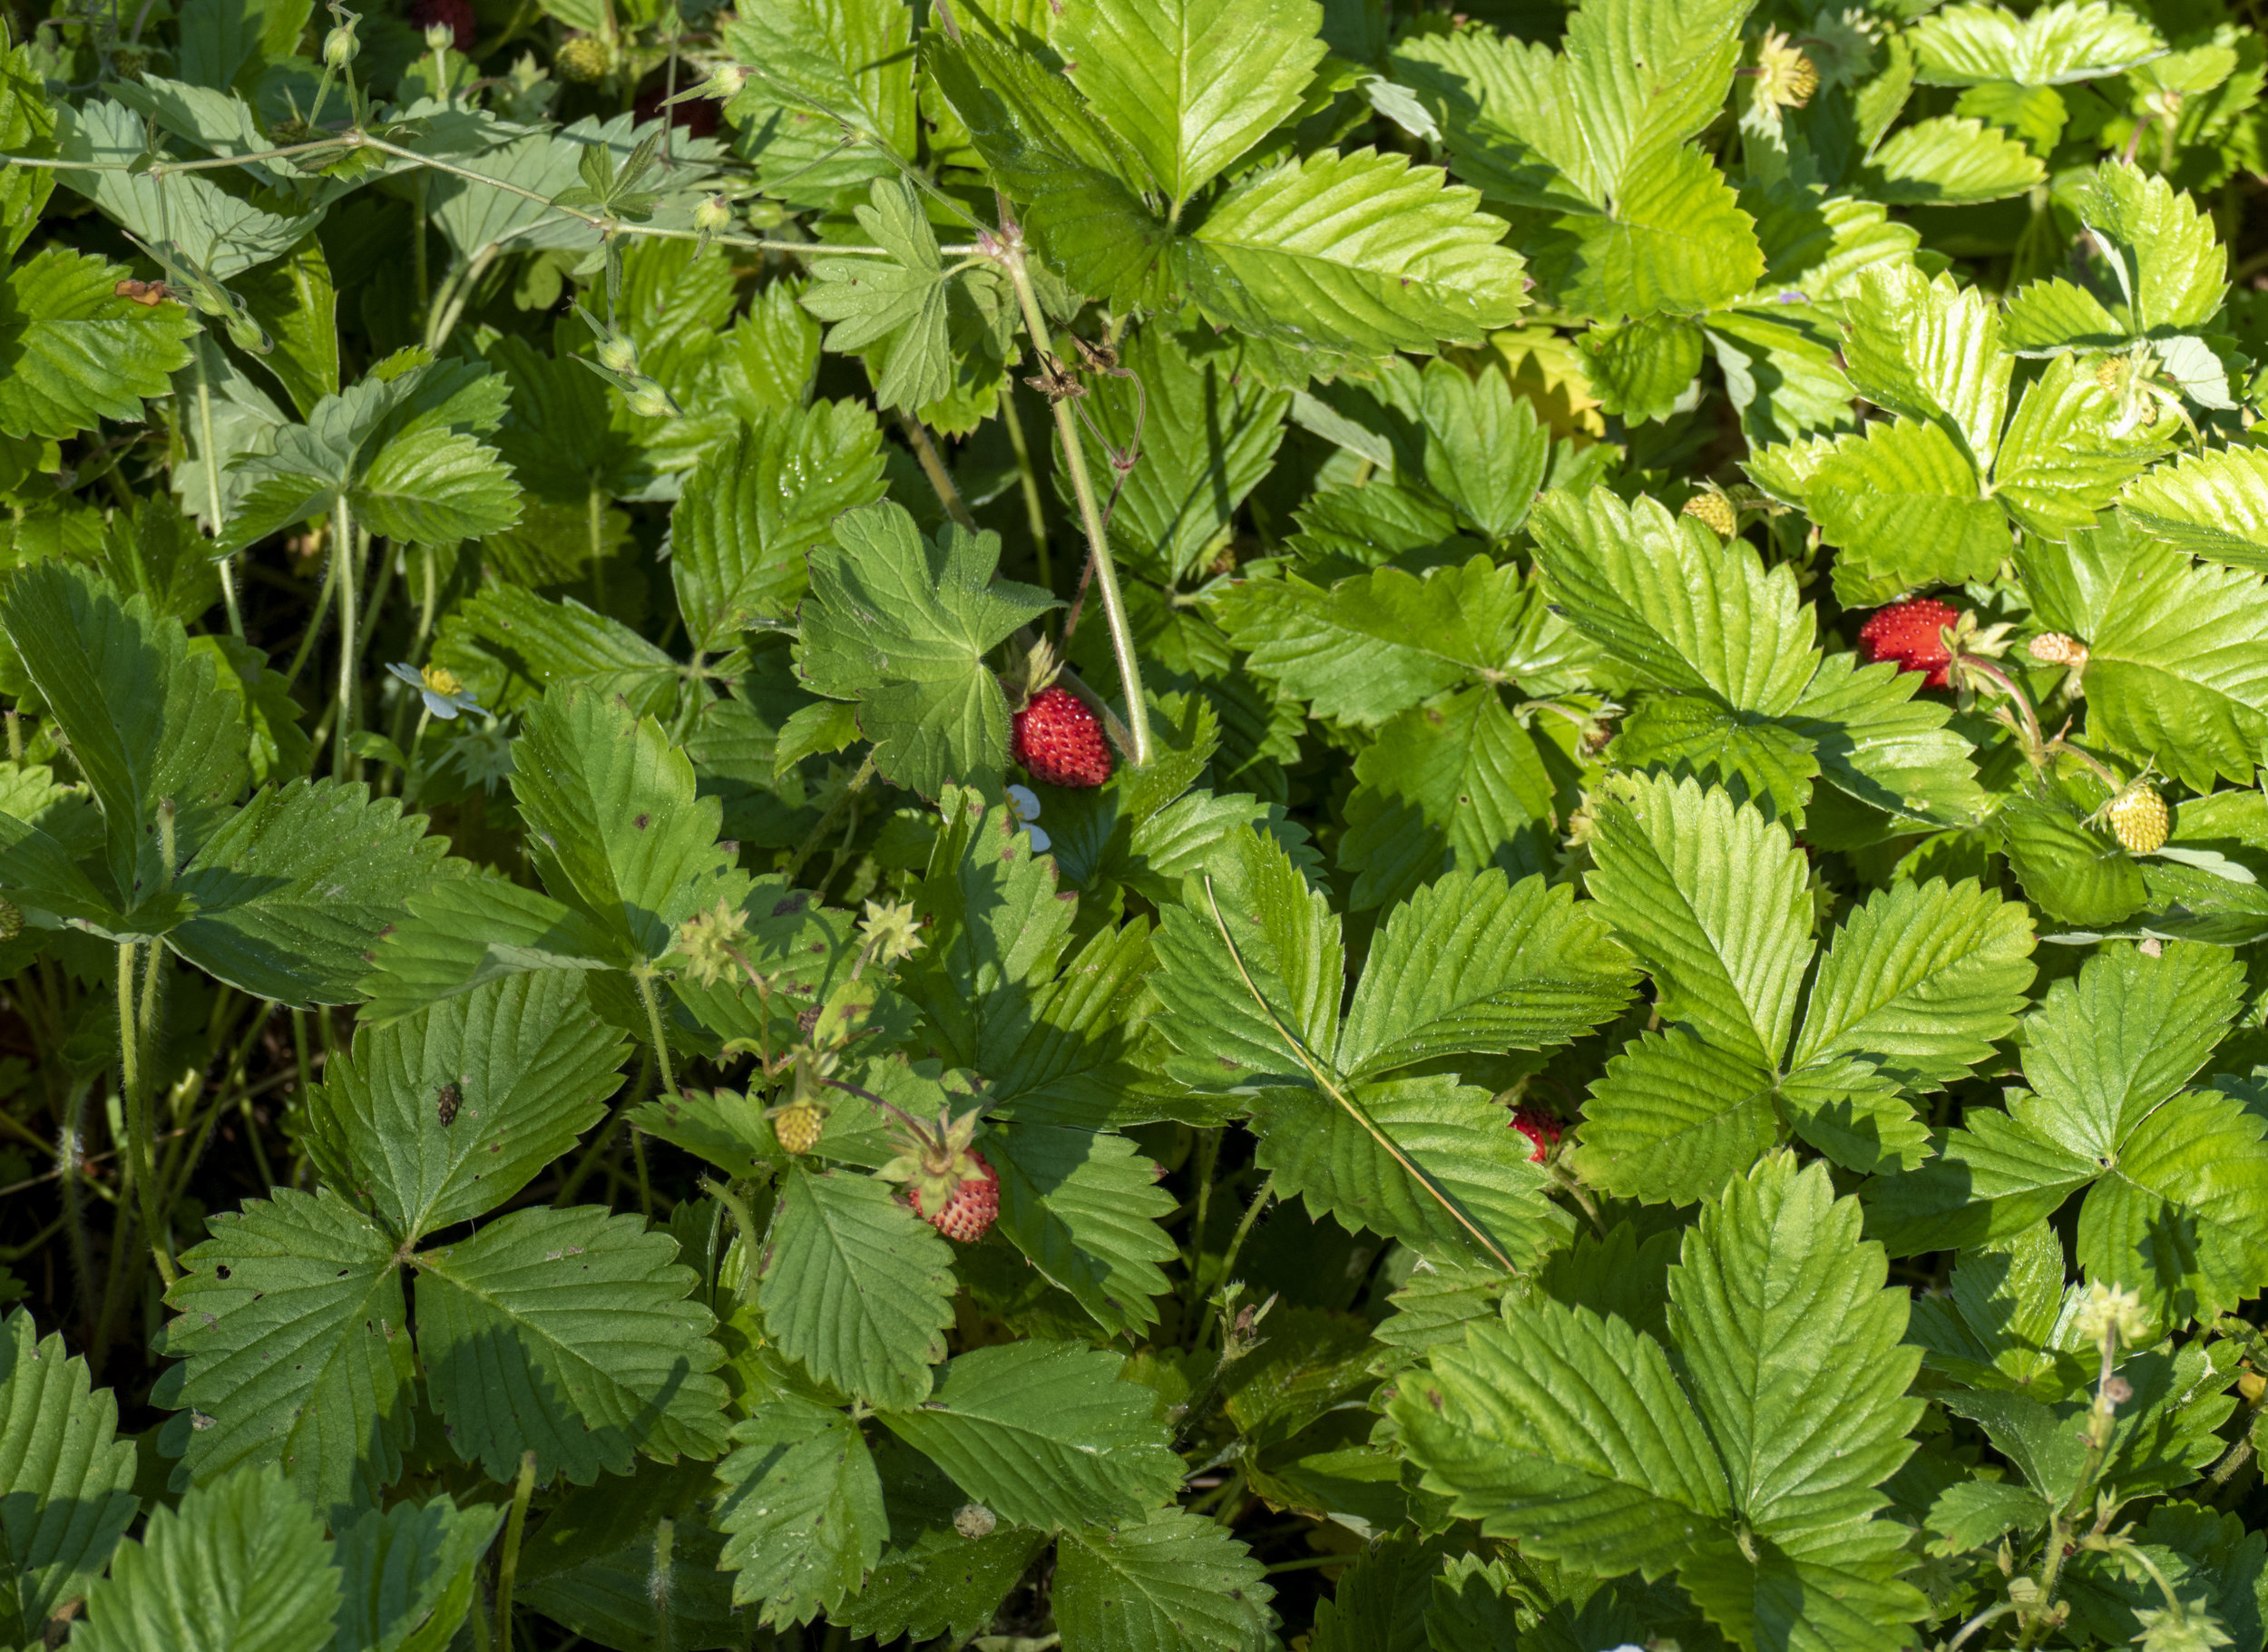 wildstrawberries_3.jpg